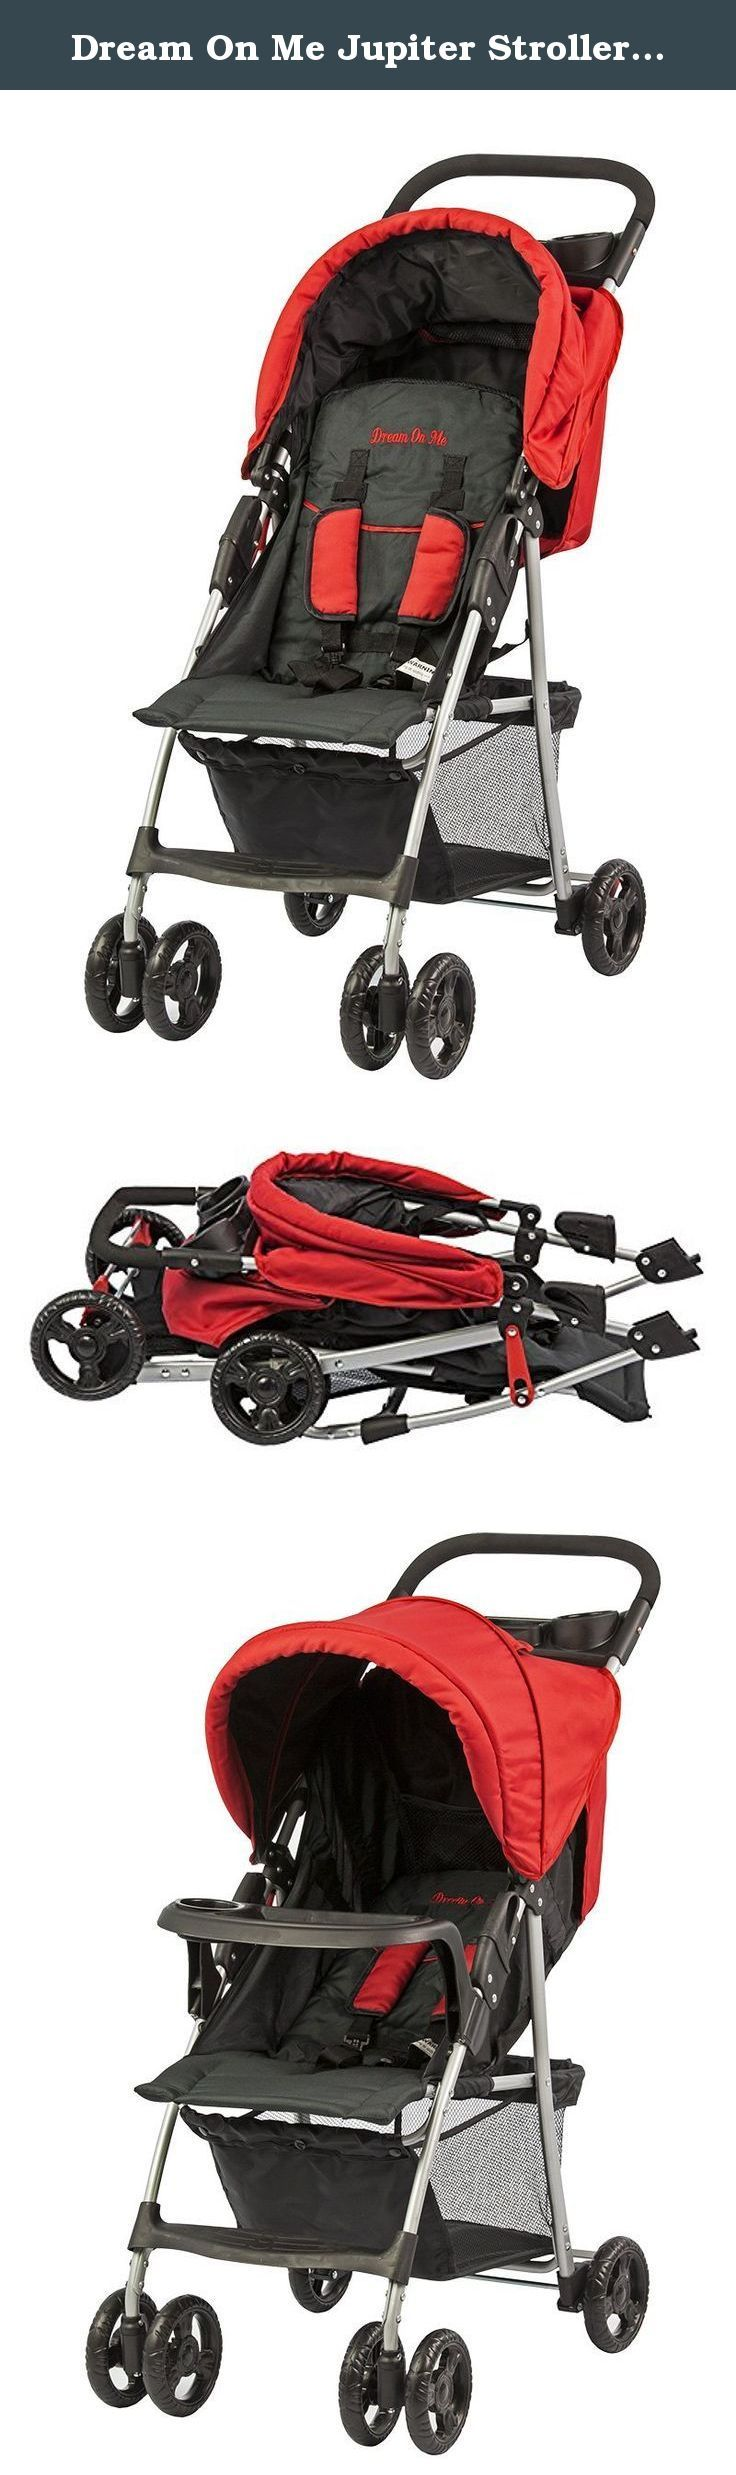 Dream On Me Jupiter Stroller, Black and Red, Small. Dream